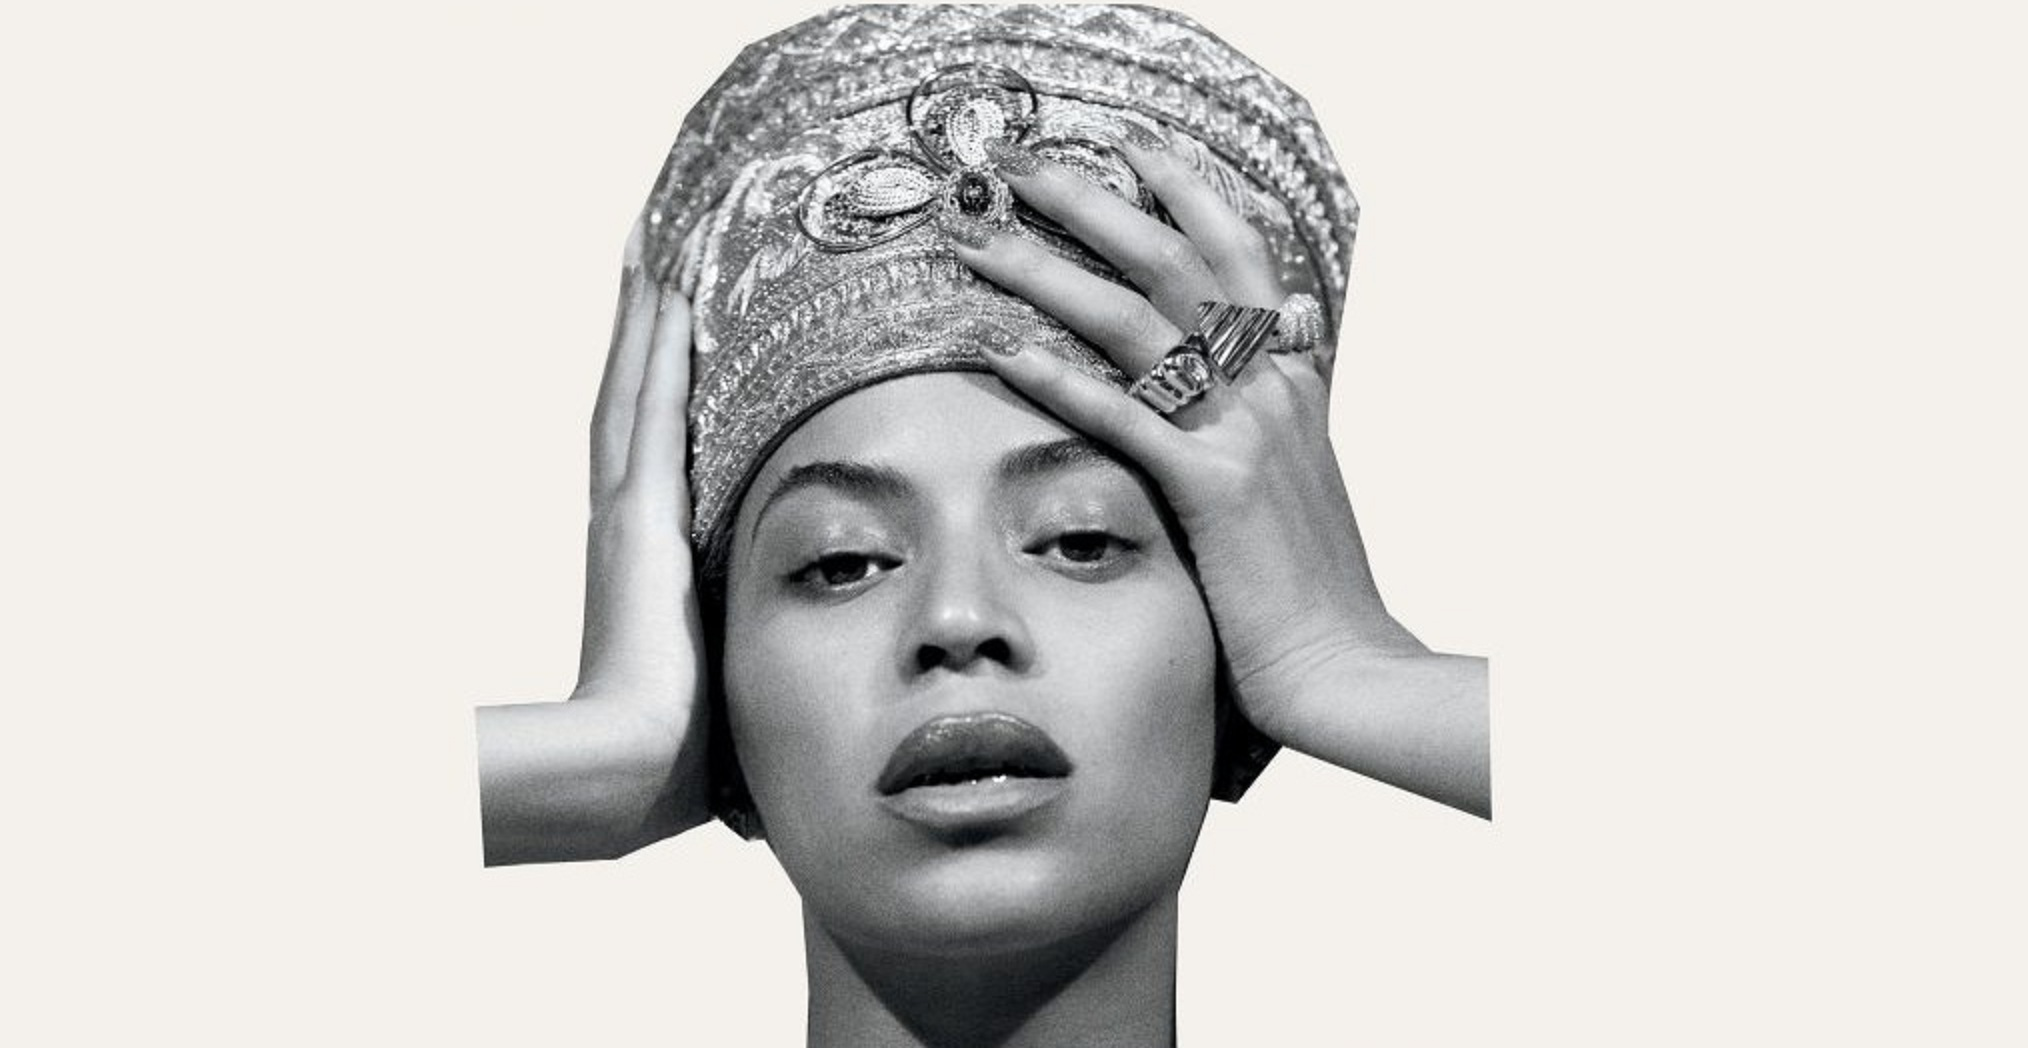 Beyonce Drops Surprise Album, 'Homecoming', Shoots to #1 on Itunes!